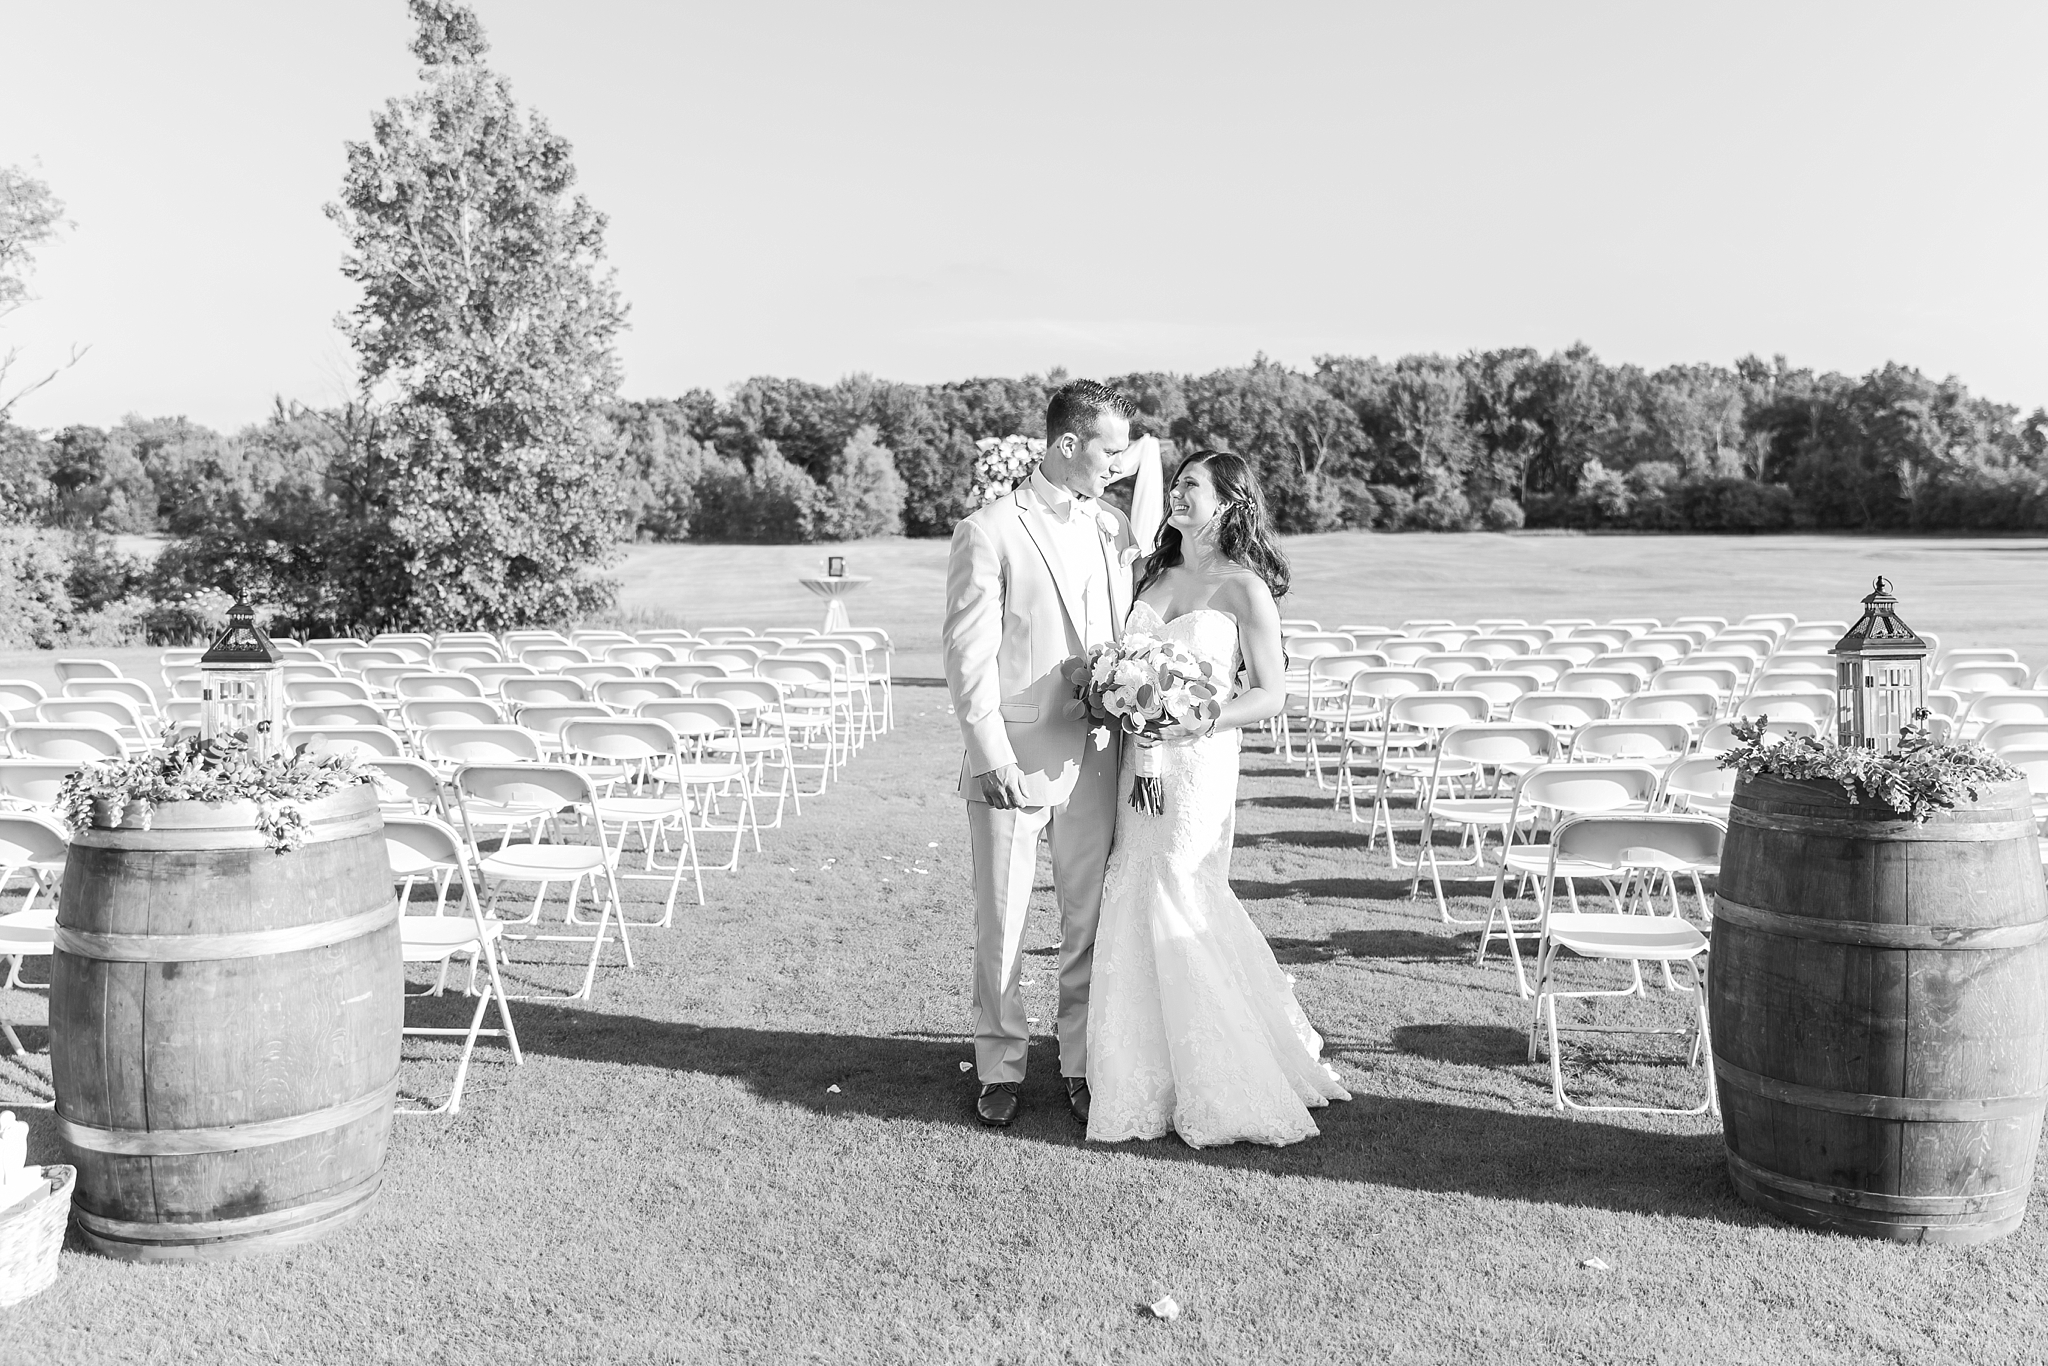 candid-timeless-wedding-photos-at-the-captains-club-in-grand-blanc-michigan-by-courtney-carolyn-photography_0087.jpg